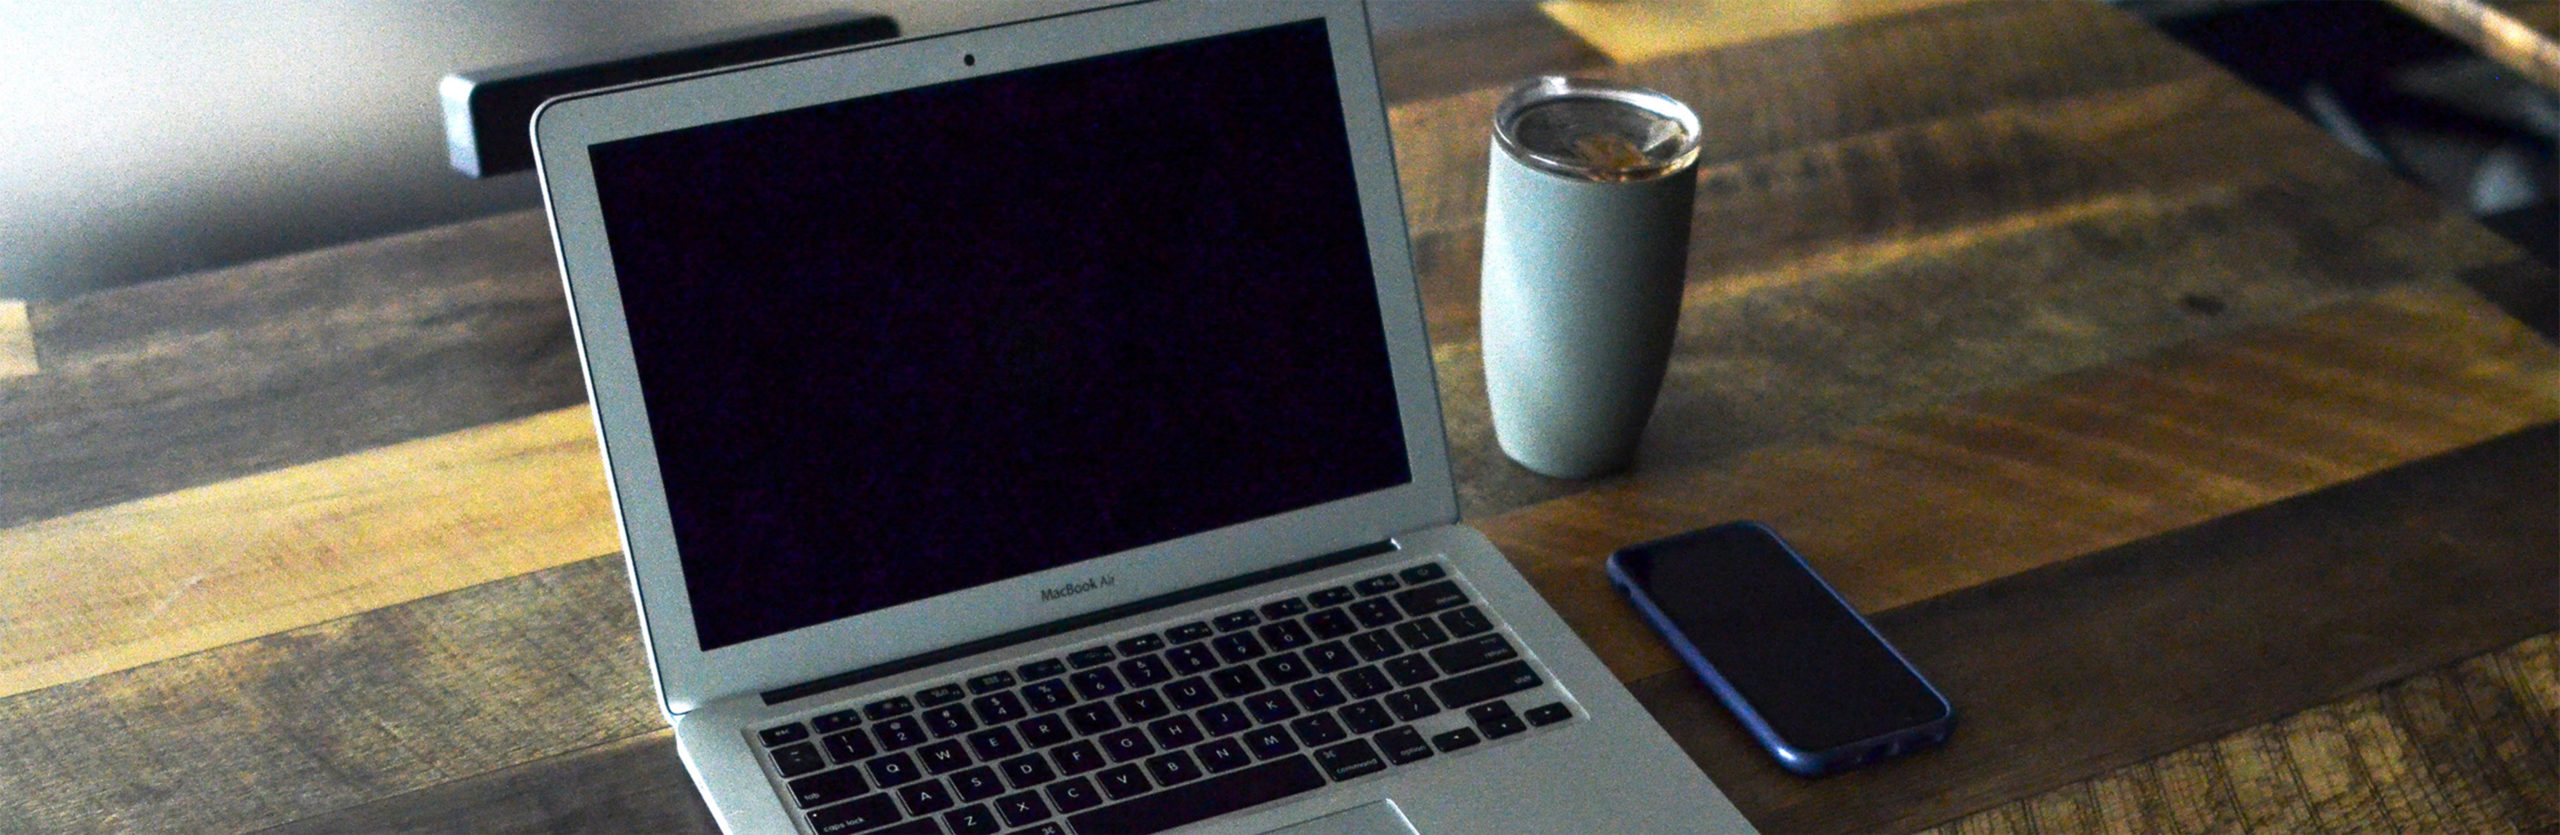 A laptop, smartphone, and coffee on the desk that's ready for a productive work day.